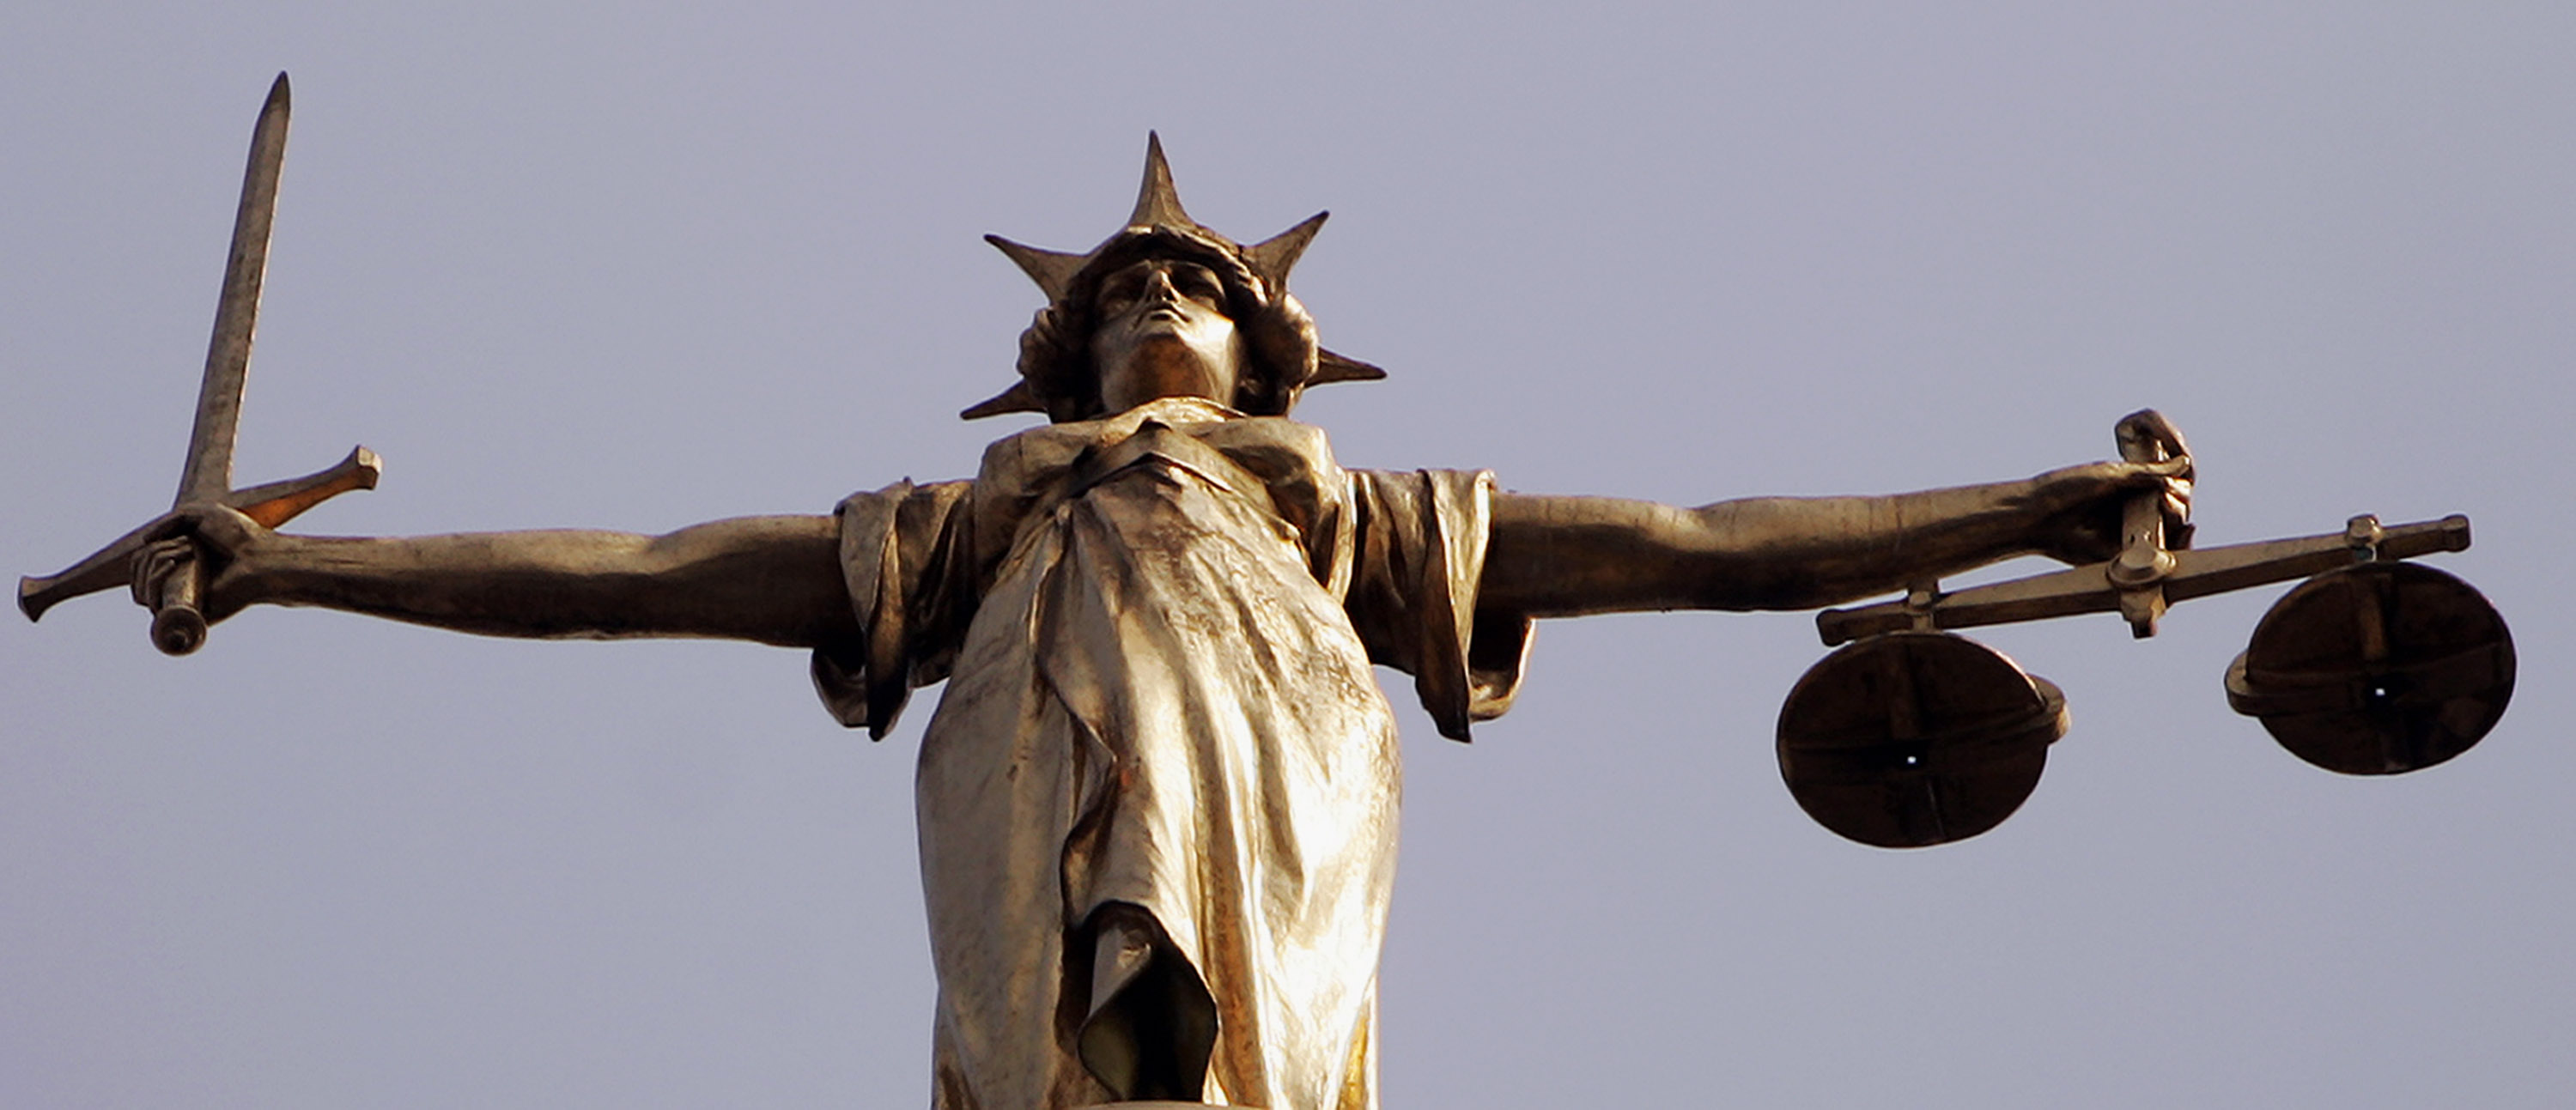 The Scales of Justice, the international symbol of the judicial system  (Photo: Bruno Vincent/Getty Images).